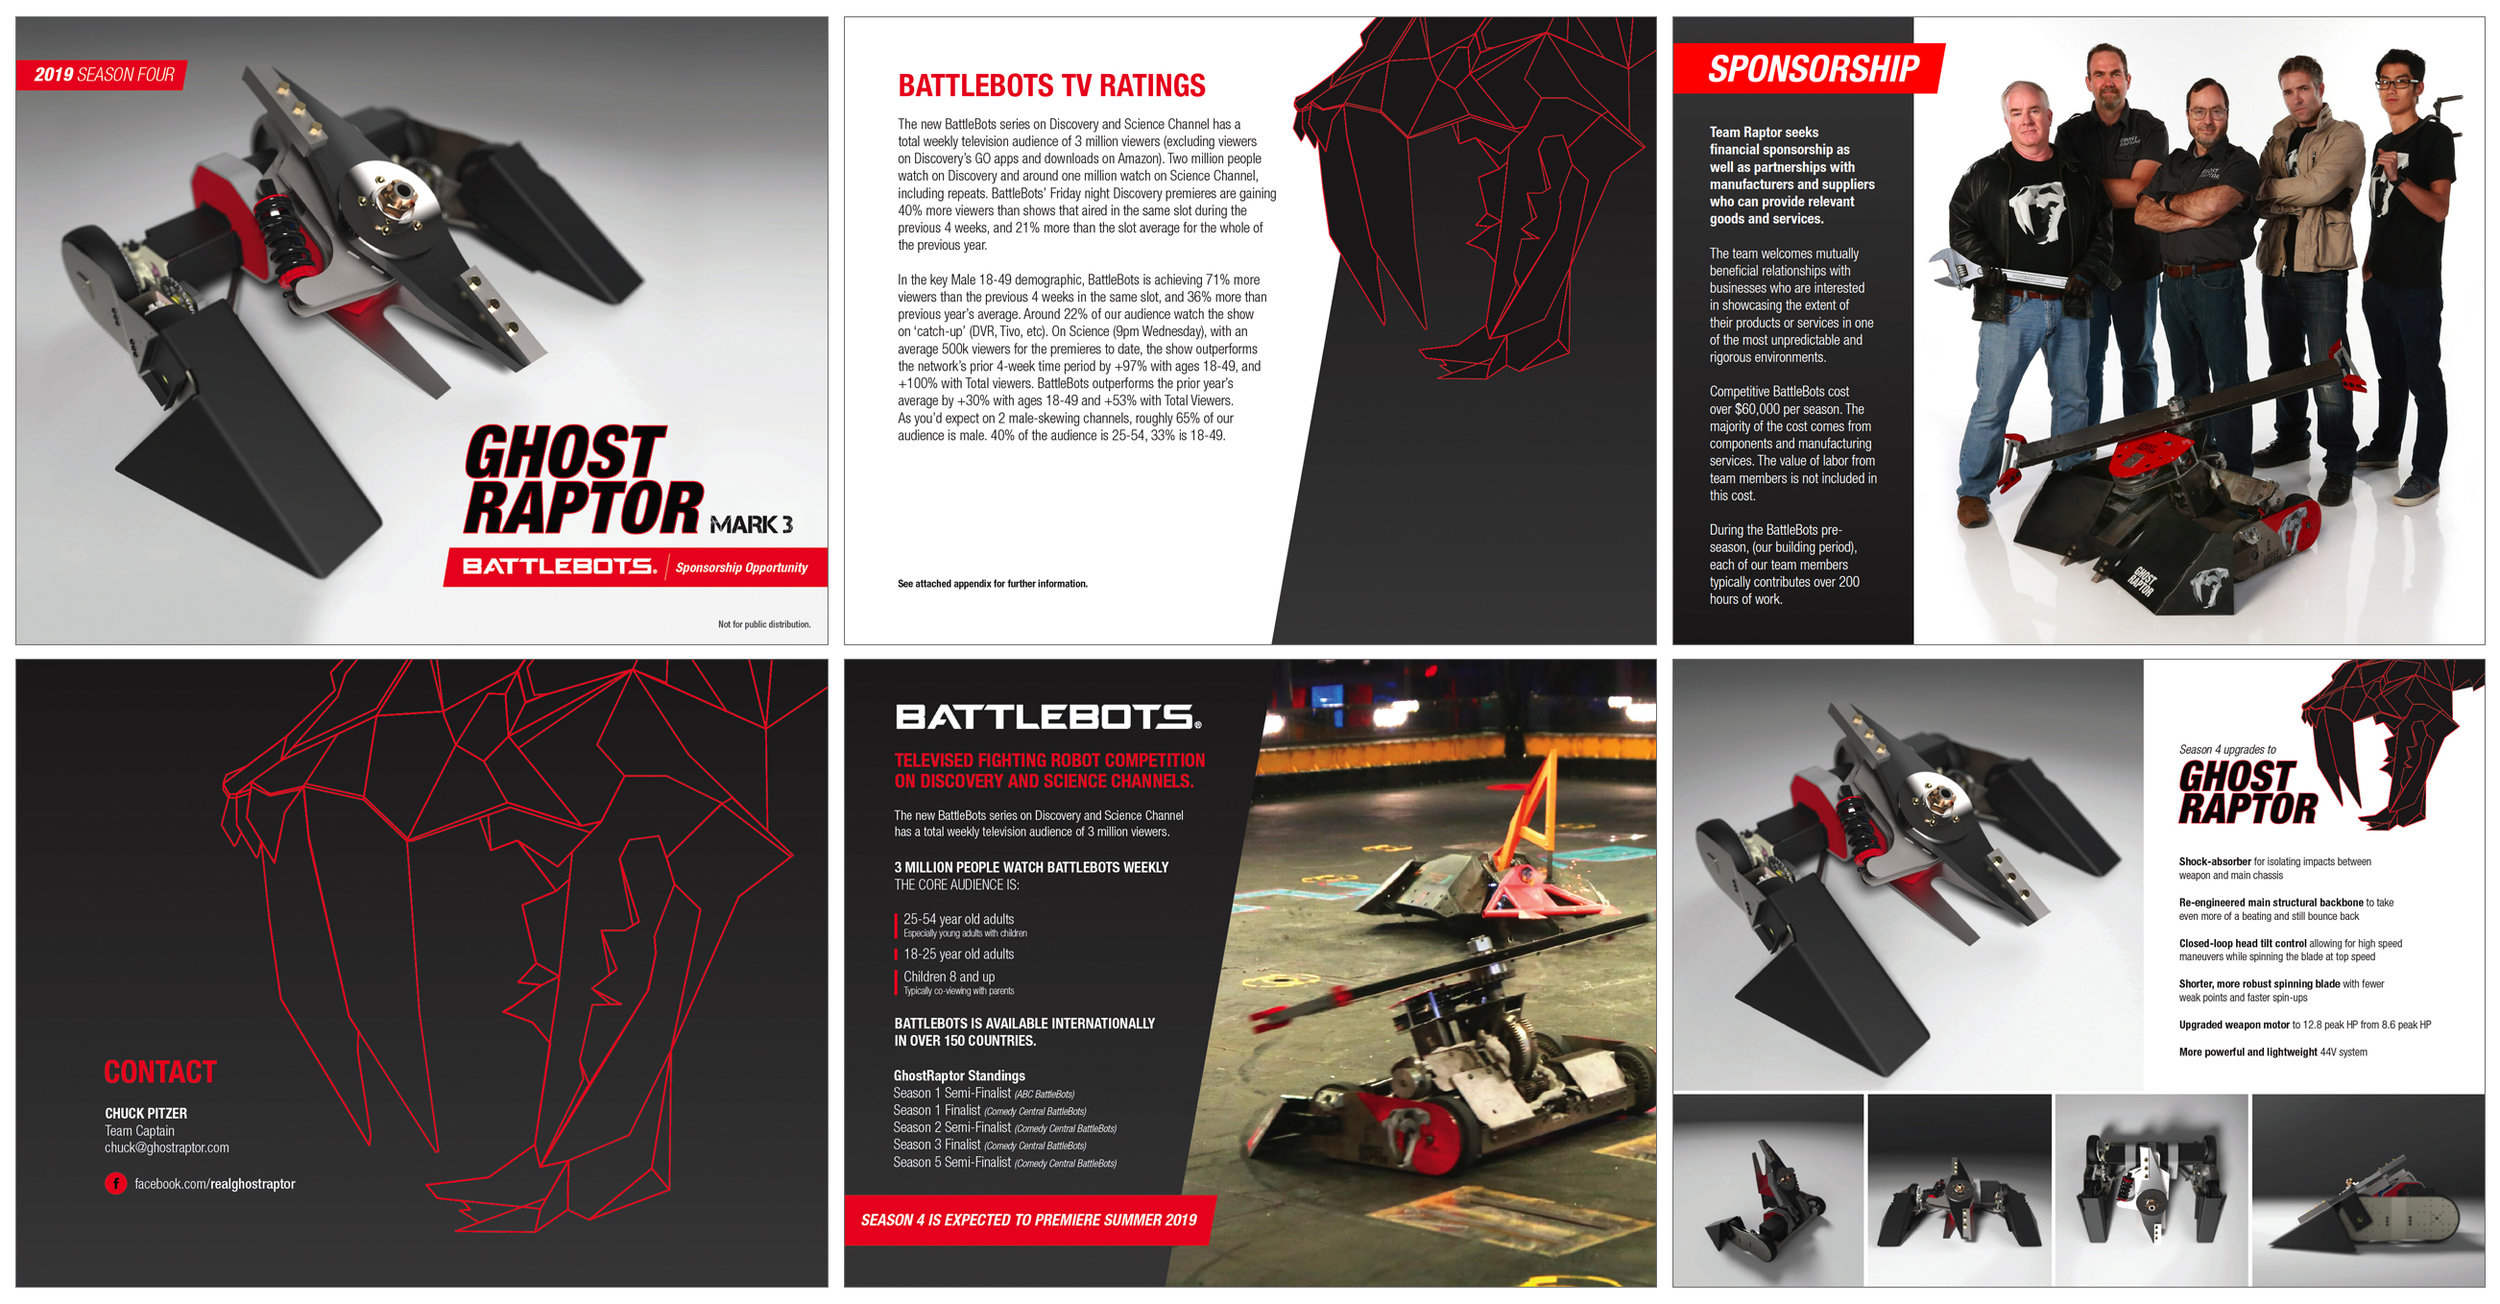 Sponsorship Package  Battlebots Team Ghost Raptor Adobe InDesign